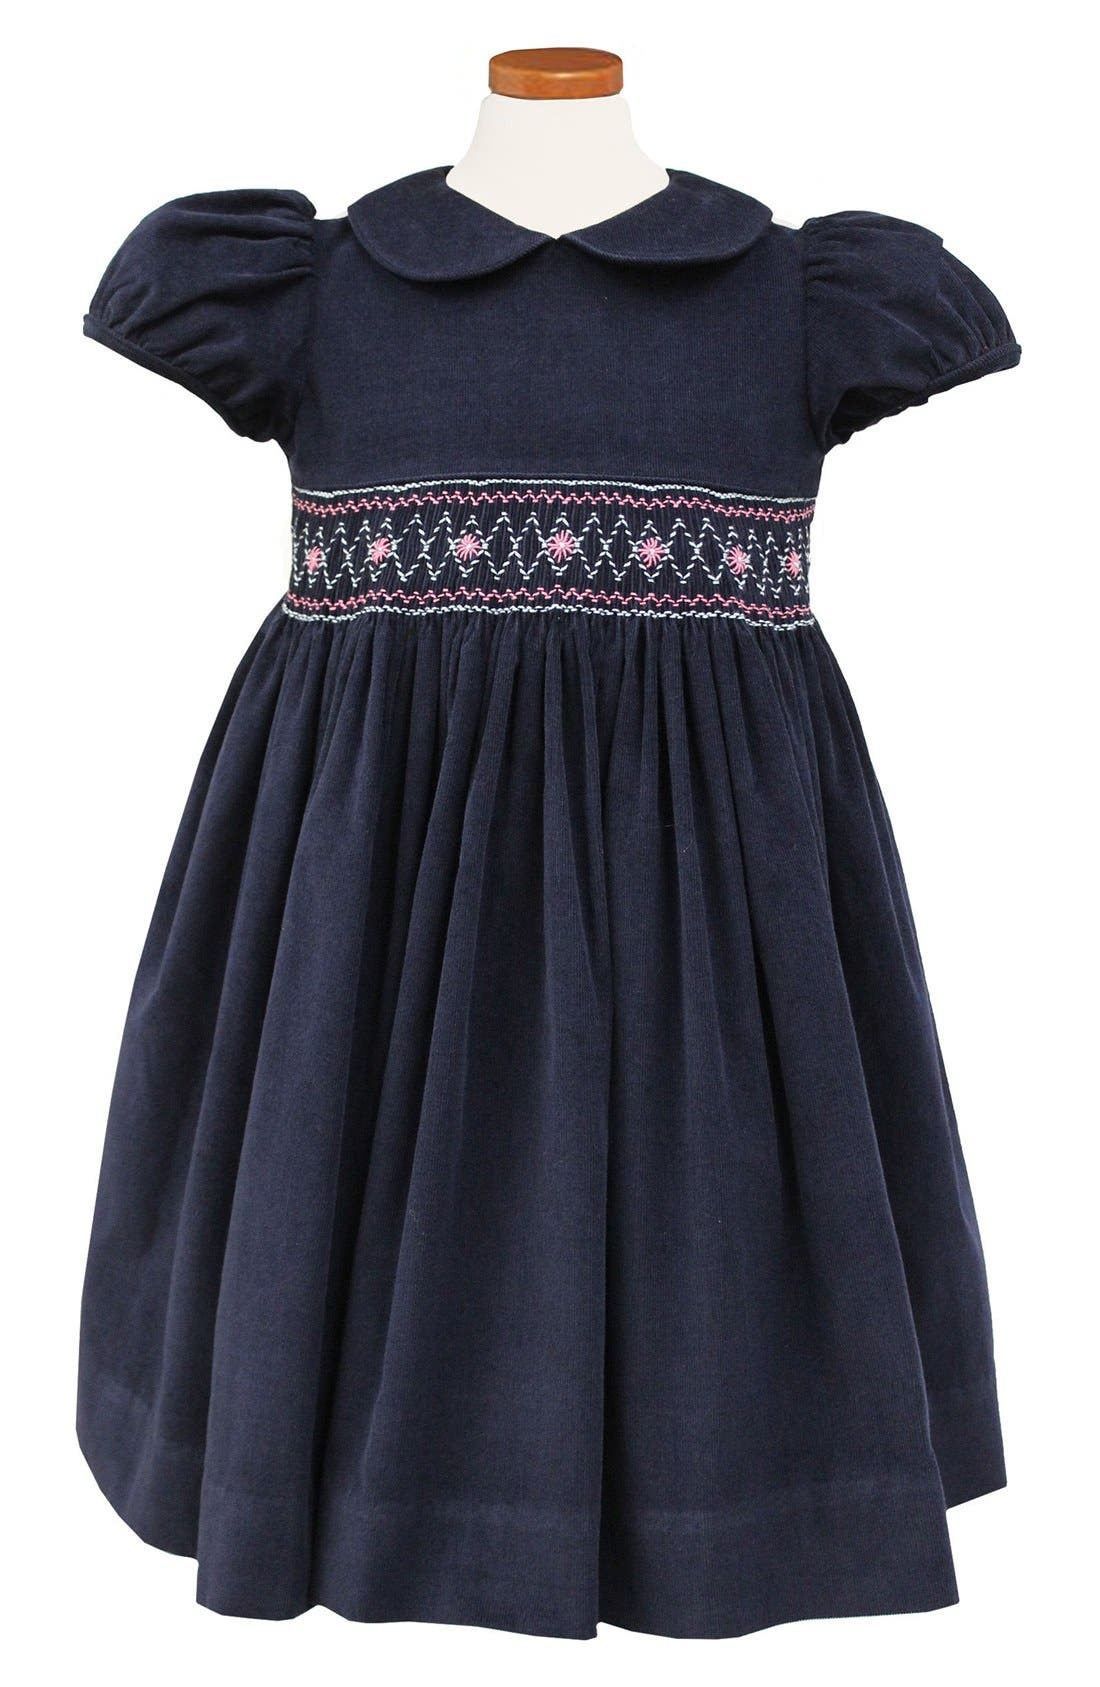 Embroidered Smocked Waist Dress,                             Main thumbnail 1, color,                             400